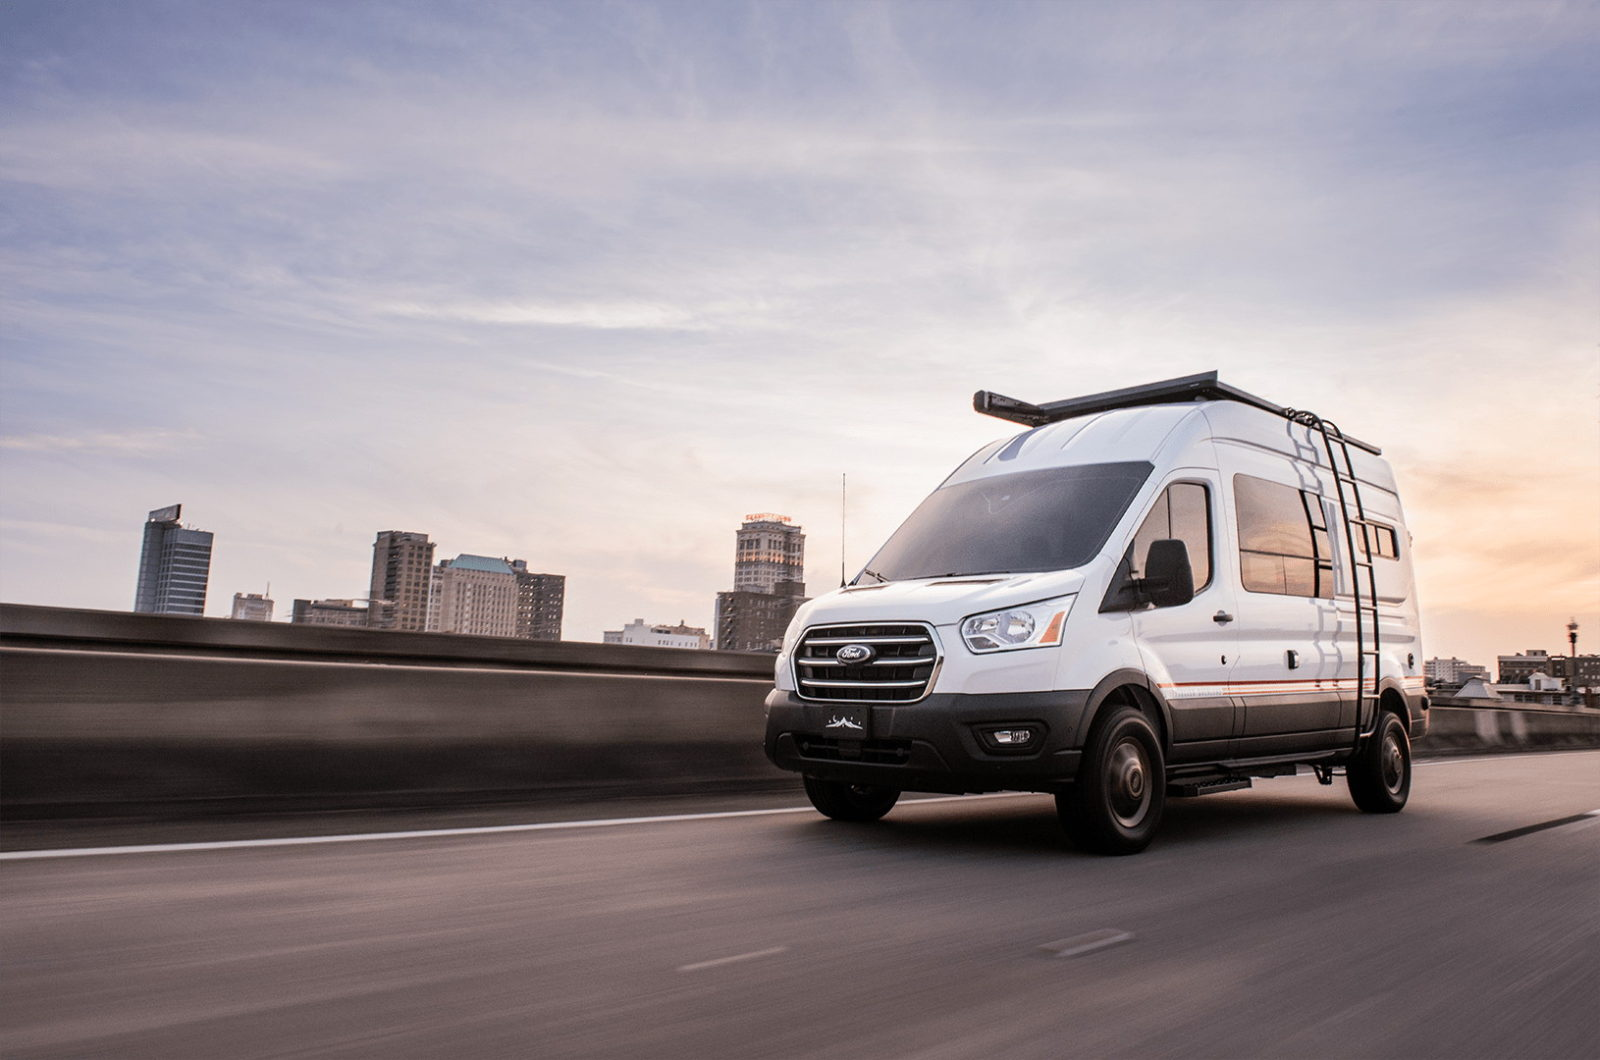 sizzling-hot-mode-lt-gives-you-the-best-an-awd-ford-transit-has-to-offer